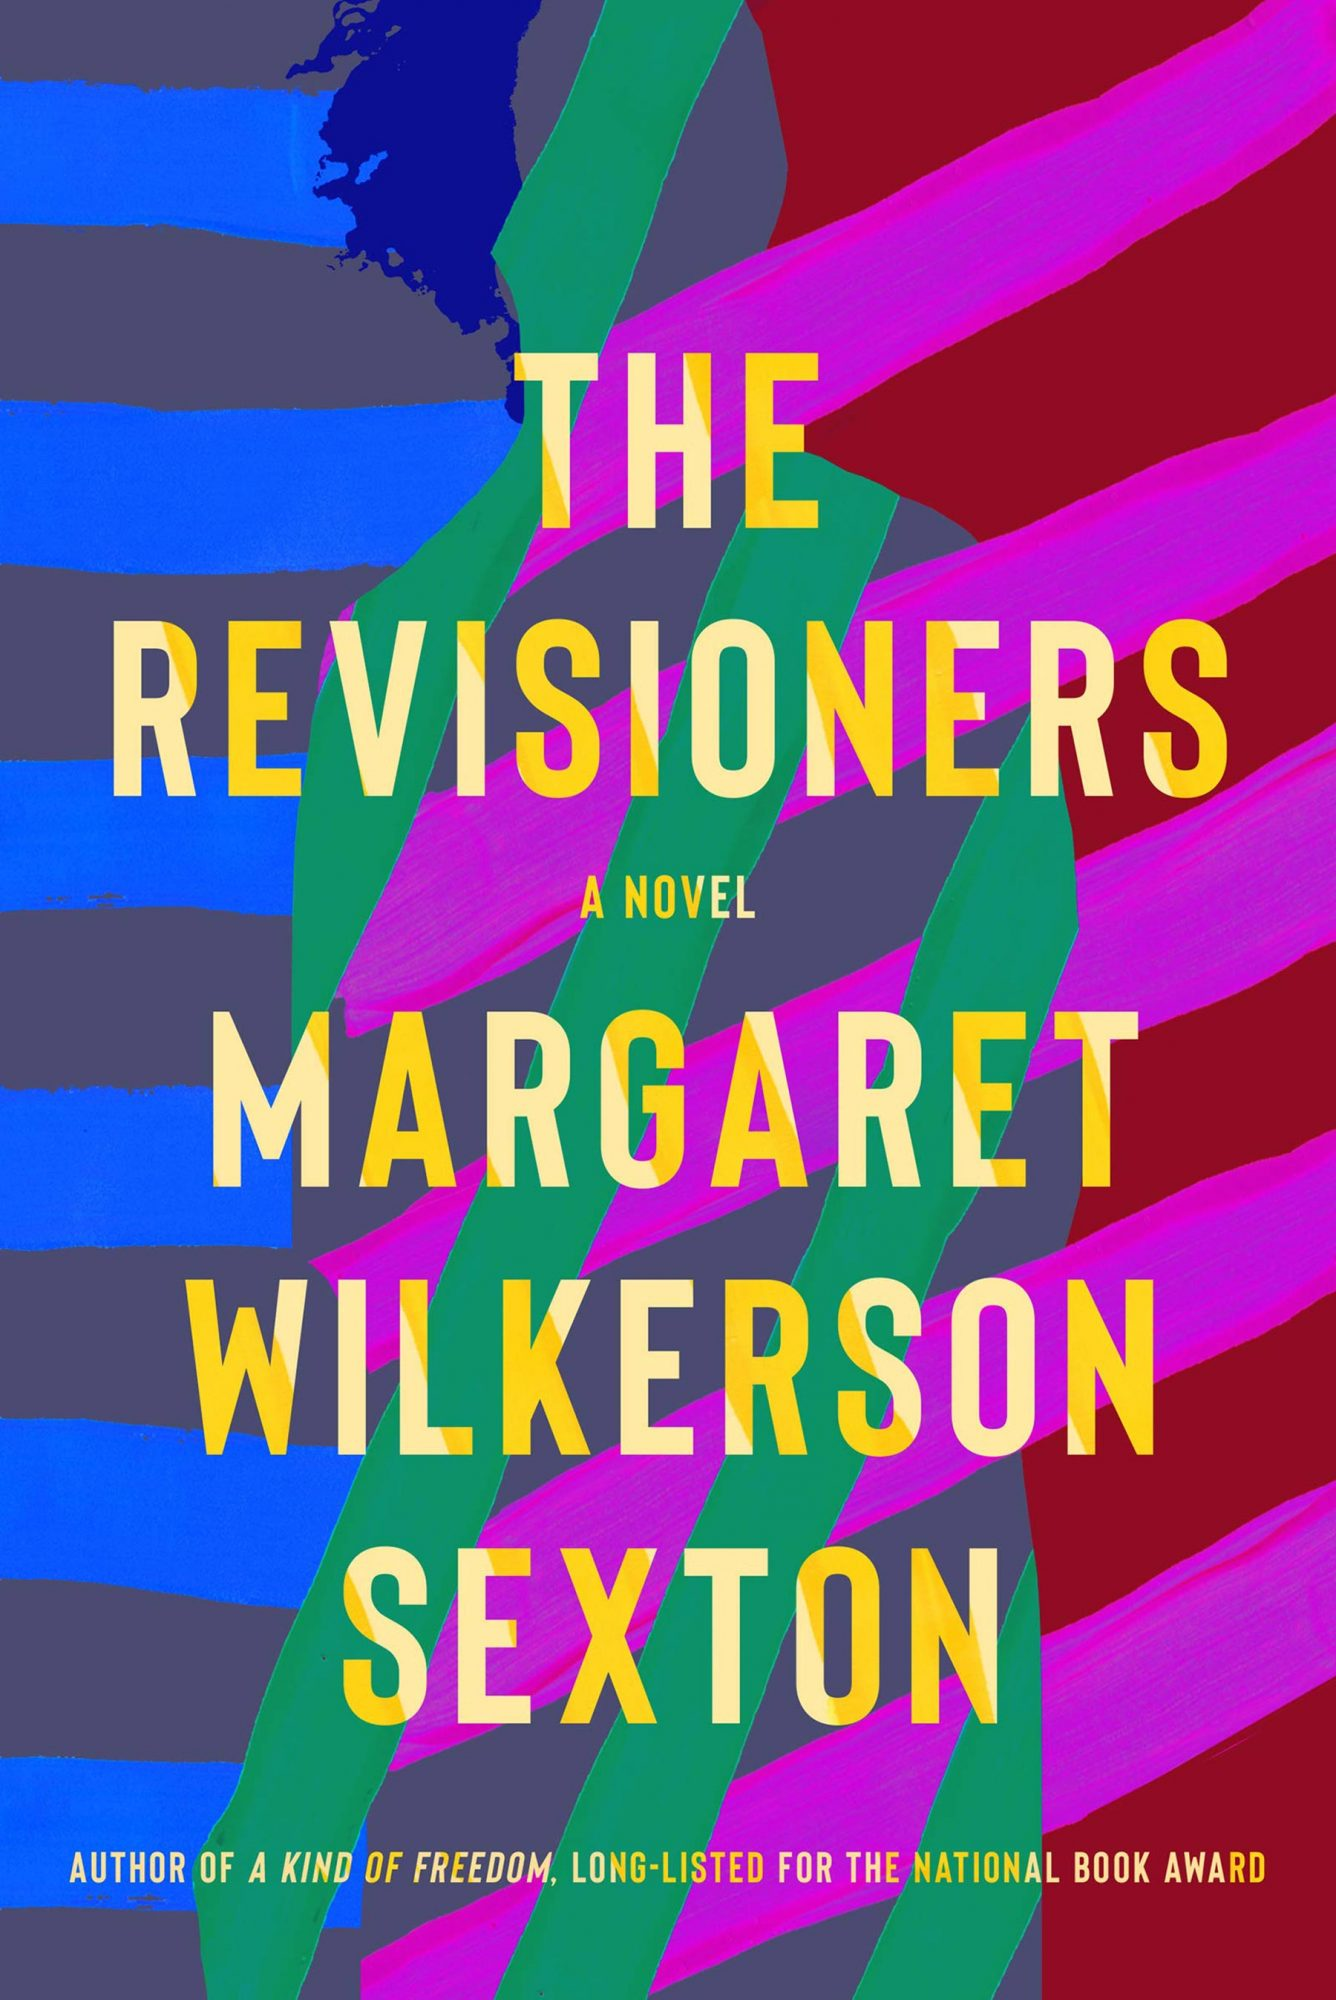 Margaret Wilkerson Sexton, The RevisionersPublisher: Counterpoint